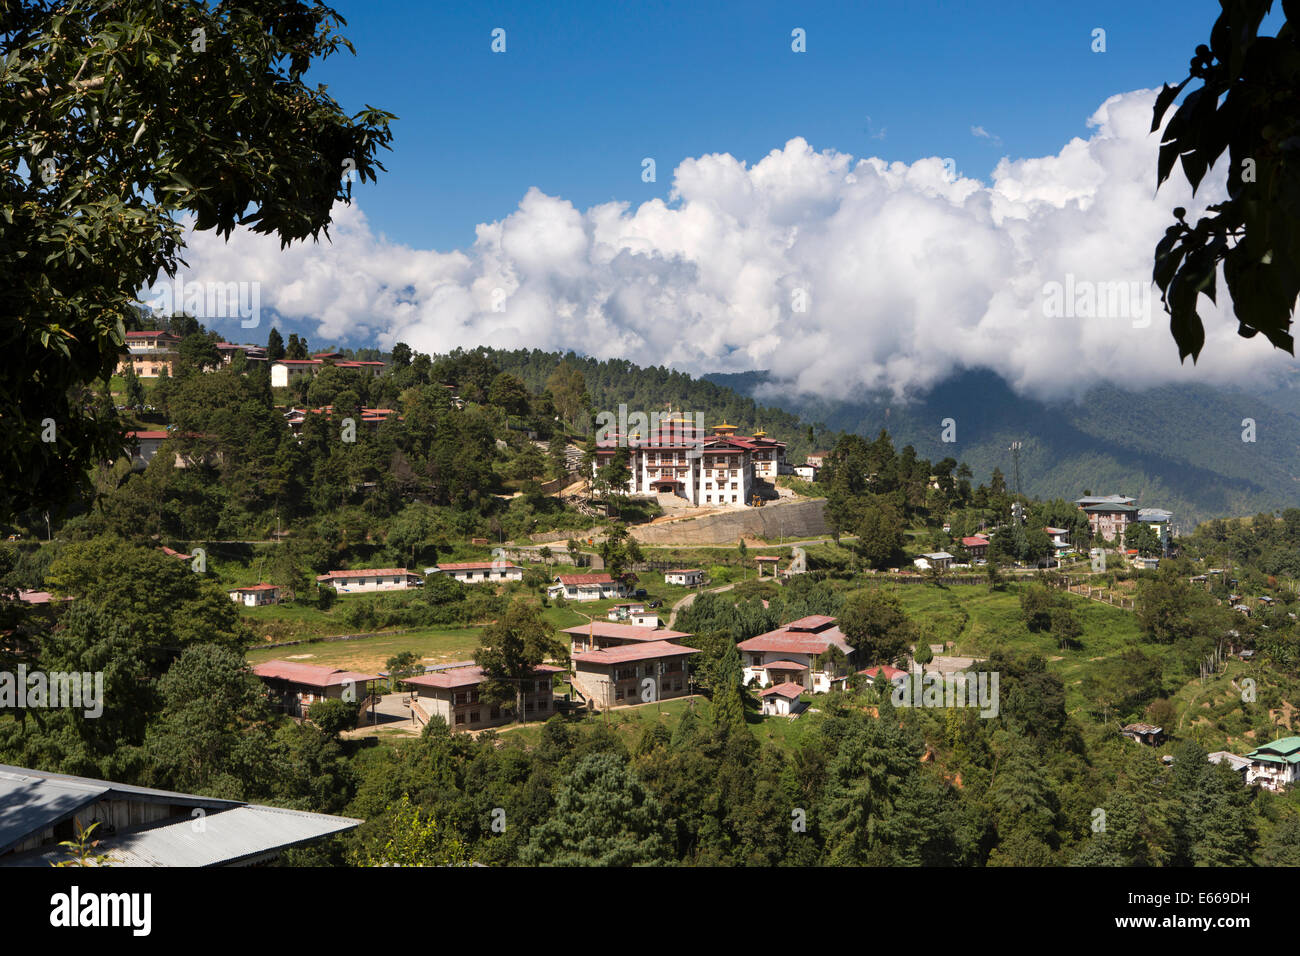 Eastern Bhutan, Mongar, view across town to Dzong - Stock Image